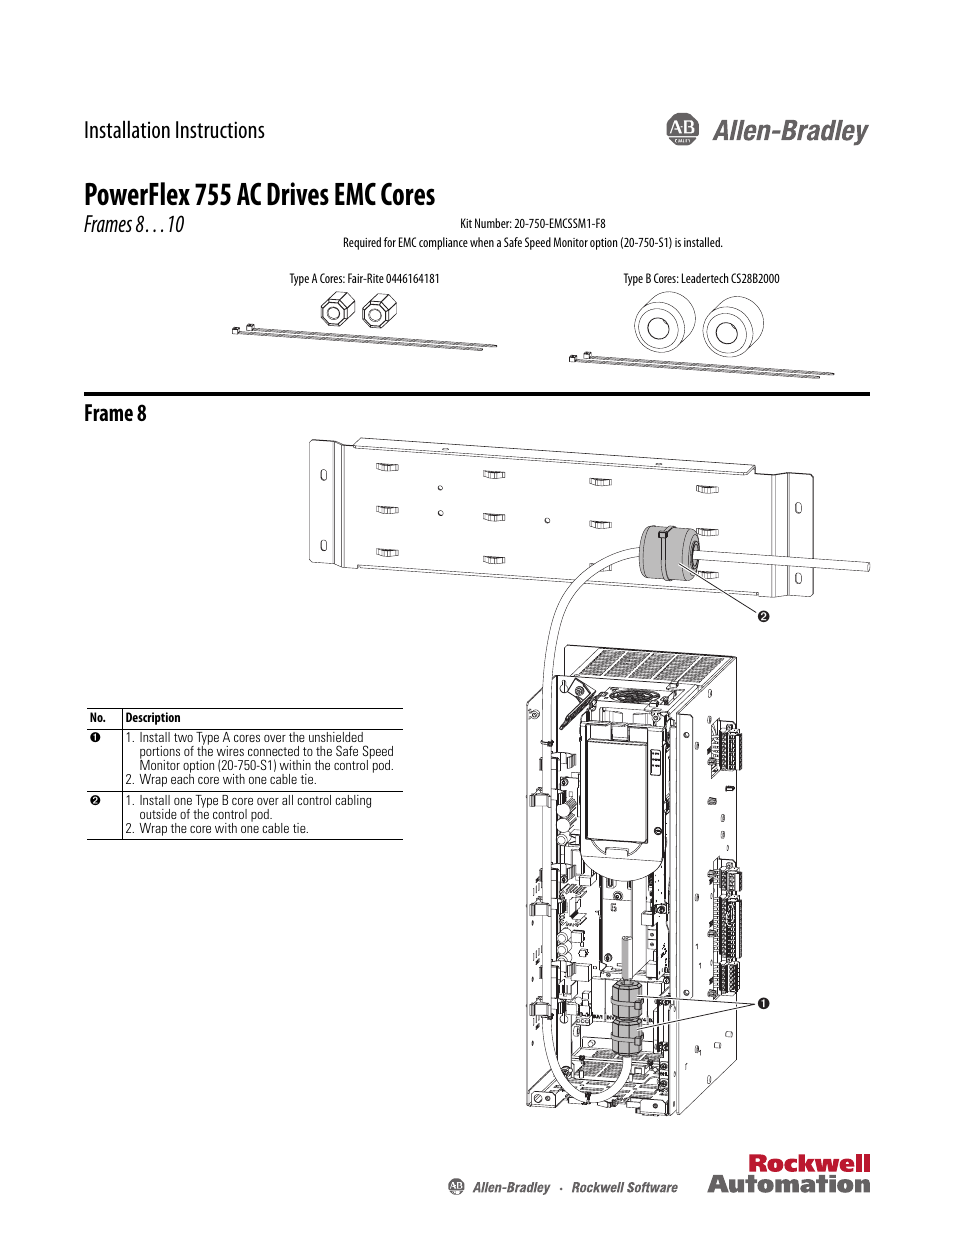 33080 1 further PF700 DI as well wiring diagram powerflex 755 the wiring diagram 1 542x340 further 4adef3e0d53f623ef378f3346c1012e361379ee2 likewise n7hIu also ac drive vfd allen bradley powerflex 4m 2 638 further 20b in014 enp 52 638 as well 5c624f14 9b23 4d5d b7ac f361a49cde40 bgf together with mcs1 besides  additionally PowerFlex 700S  2F Applications. on powerflex 700 wiring diagram